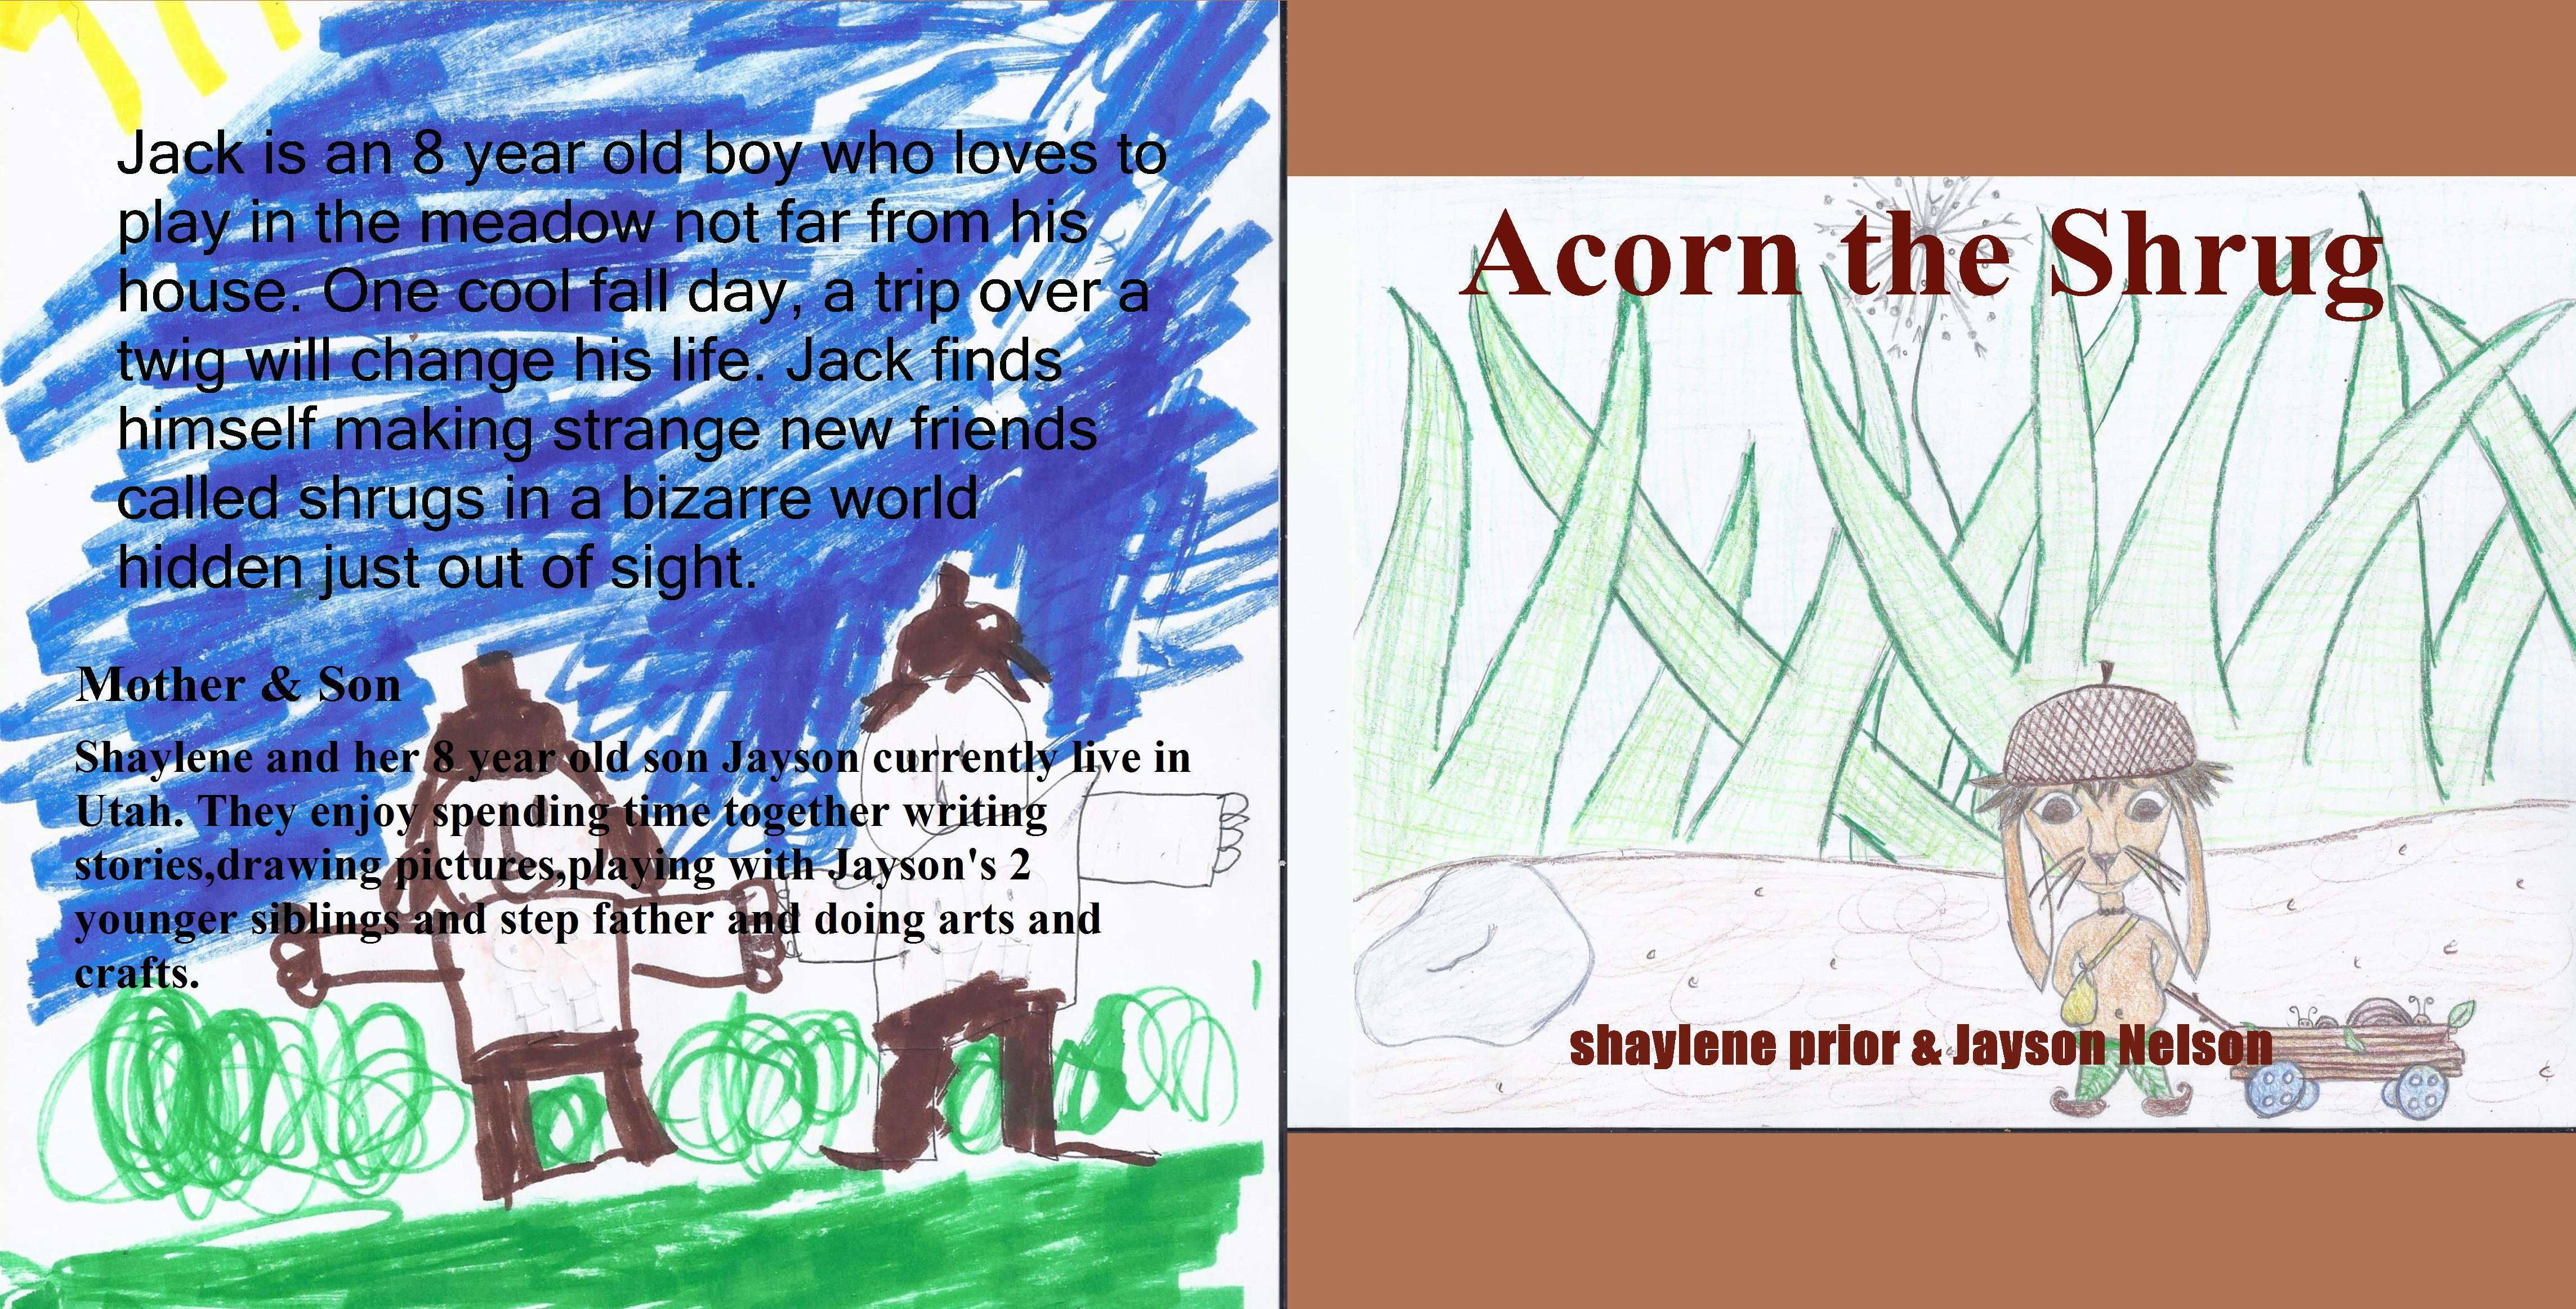 Acorn the Shrug cover image